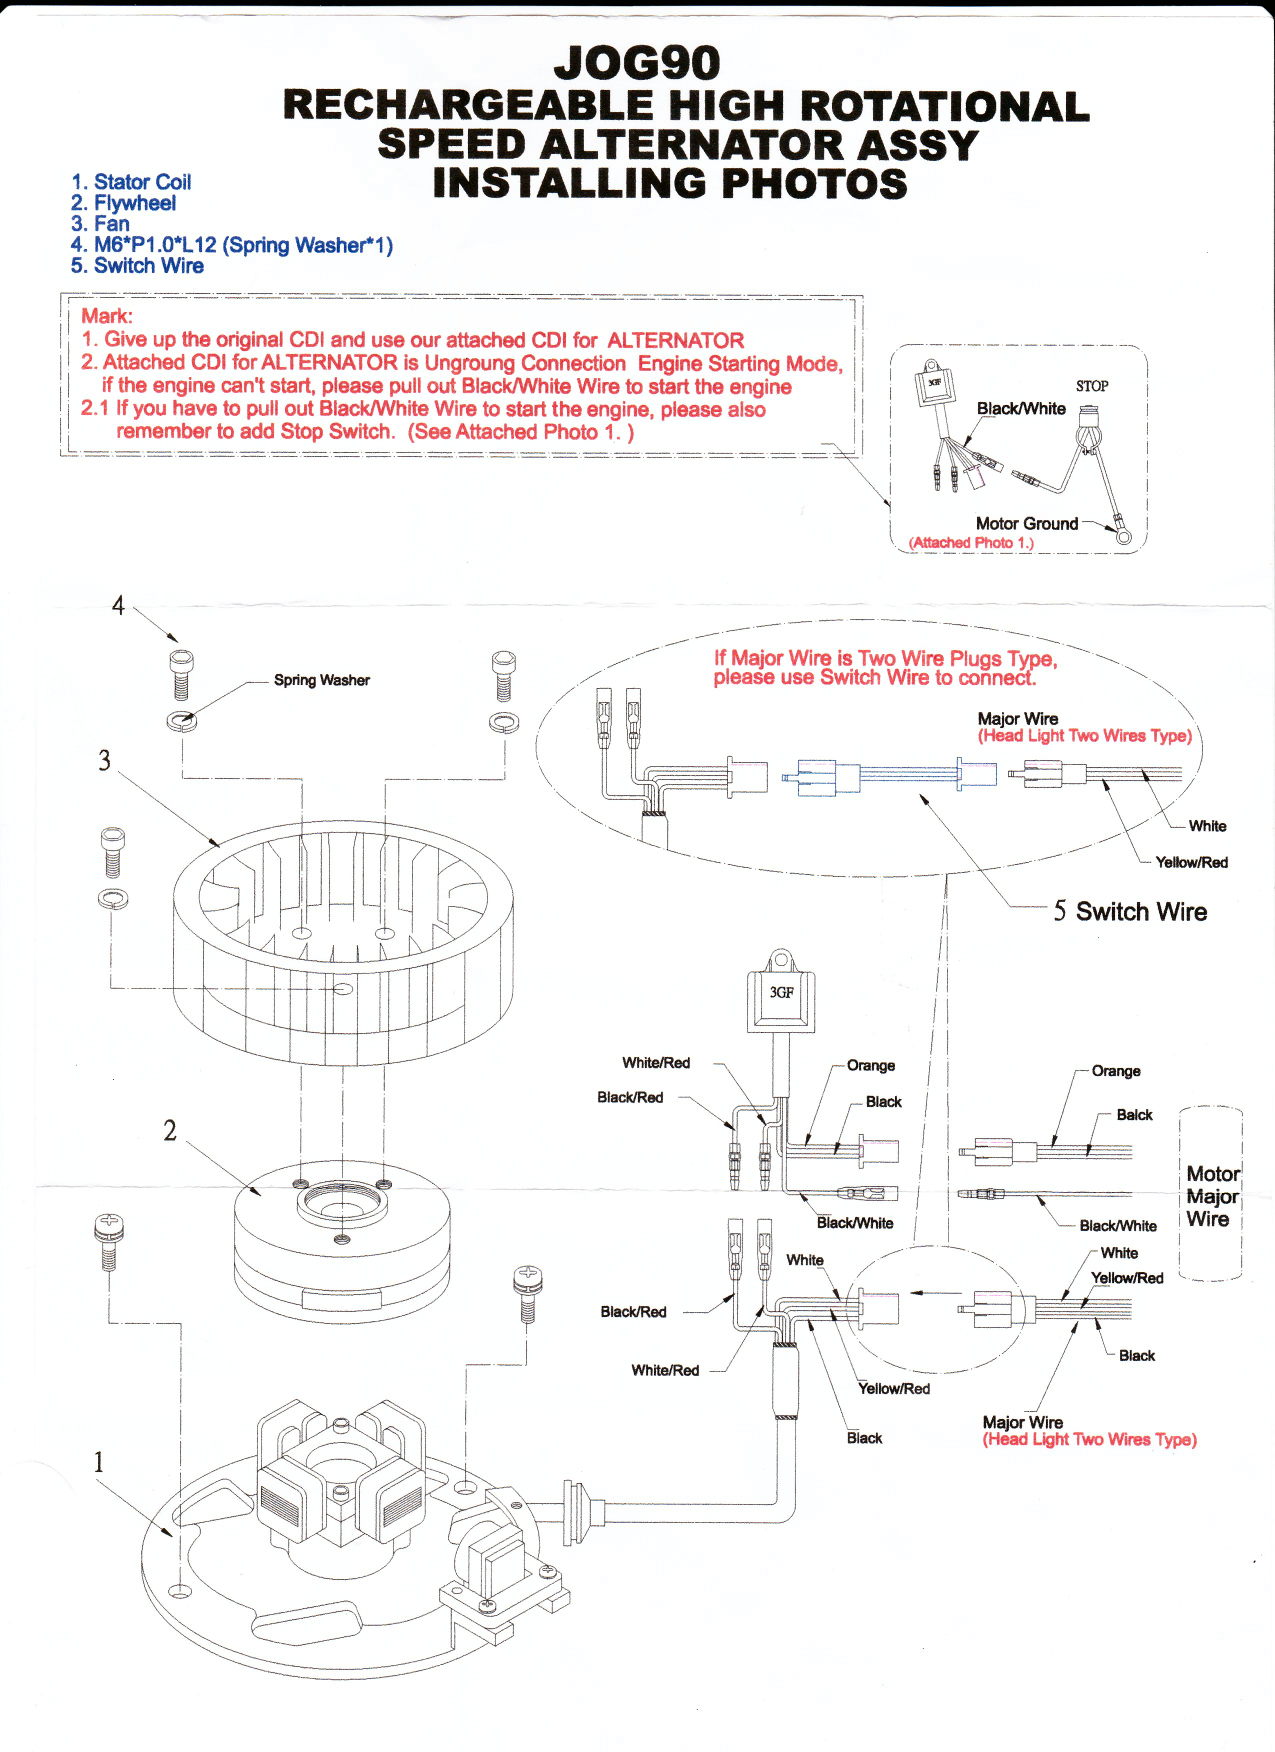 Ncy Racing Alternator Test And Review Minarelli 49ccscootcom Yamaha 3 Wire Stator Wiring Diagram Smaller Flywheel Cdi Adapter For 2 Harnesses A Standard Cooling Fan Bolts Washers To Mount The Instructions